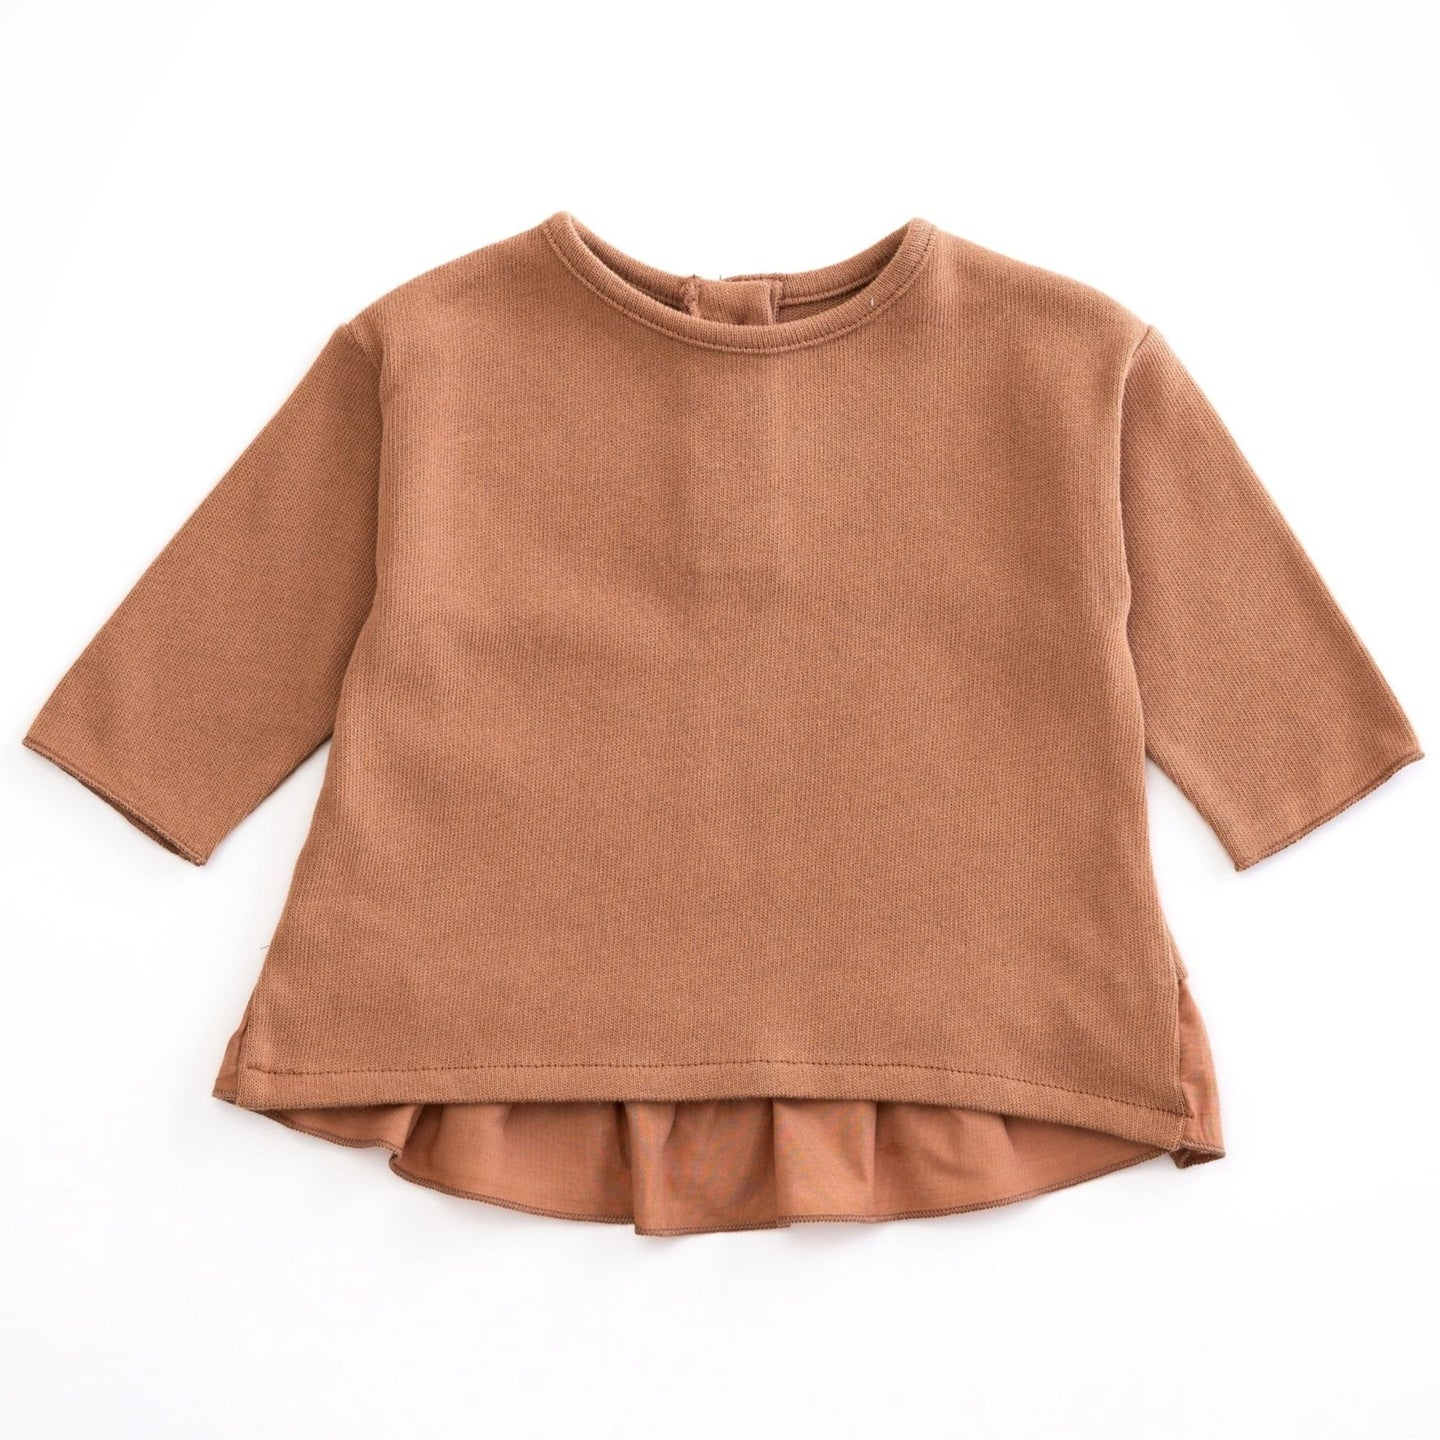 PLAY UP Pullover Langarm- Shirt Jersey mit Volants Organic Cotton